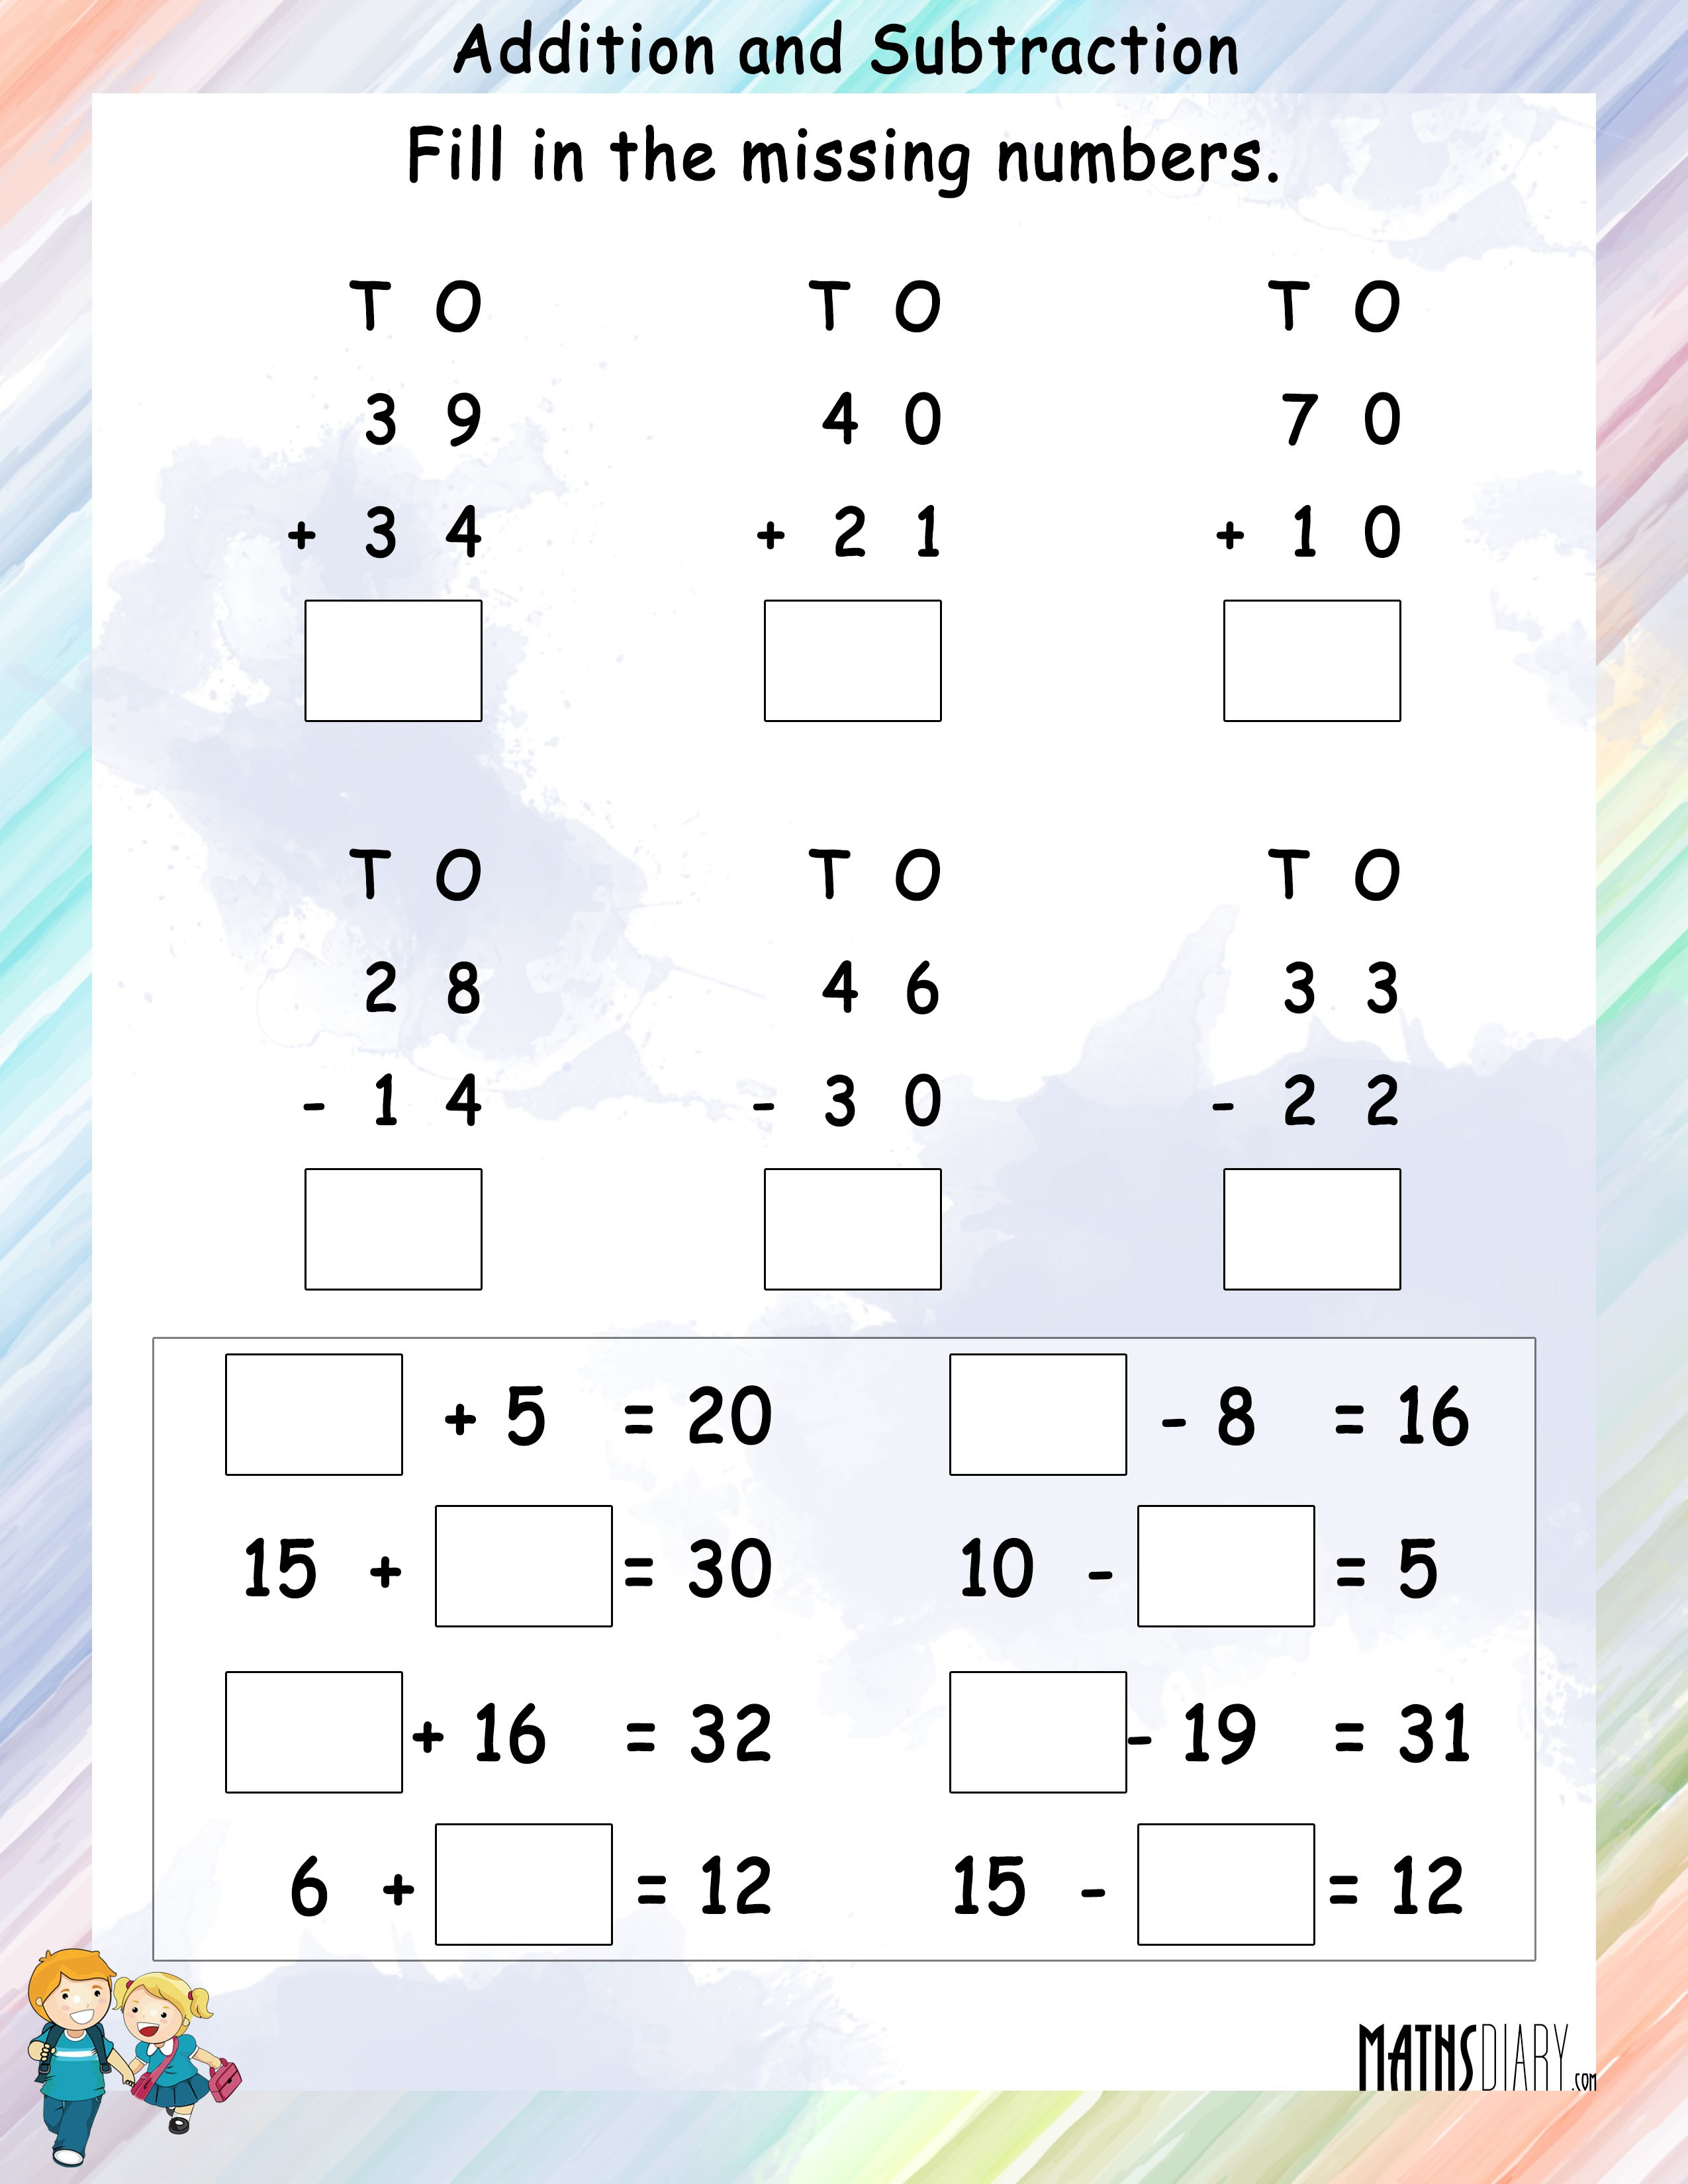 Addition And Subtraction Worksheets Grade 1 Addition And – Subtraction Worksheets Grade 1